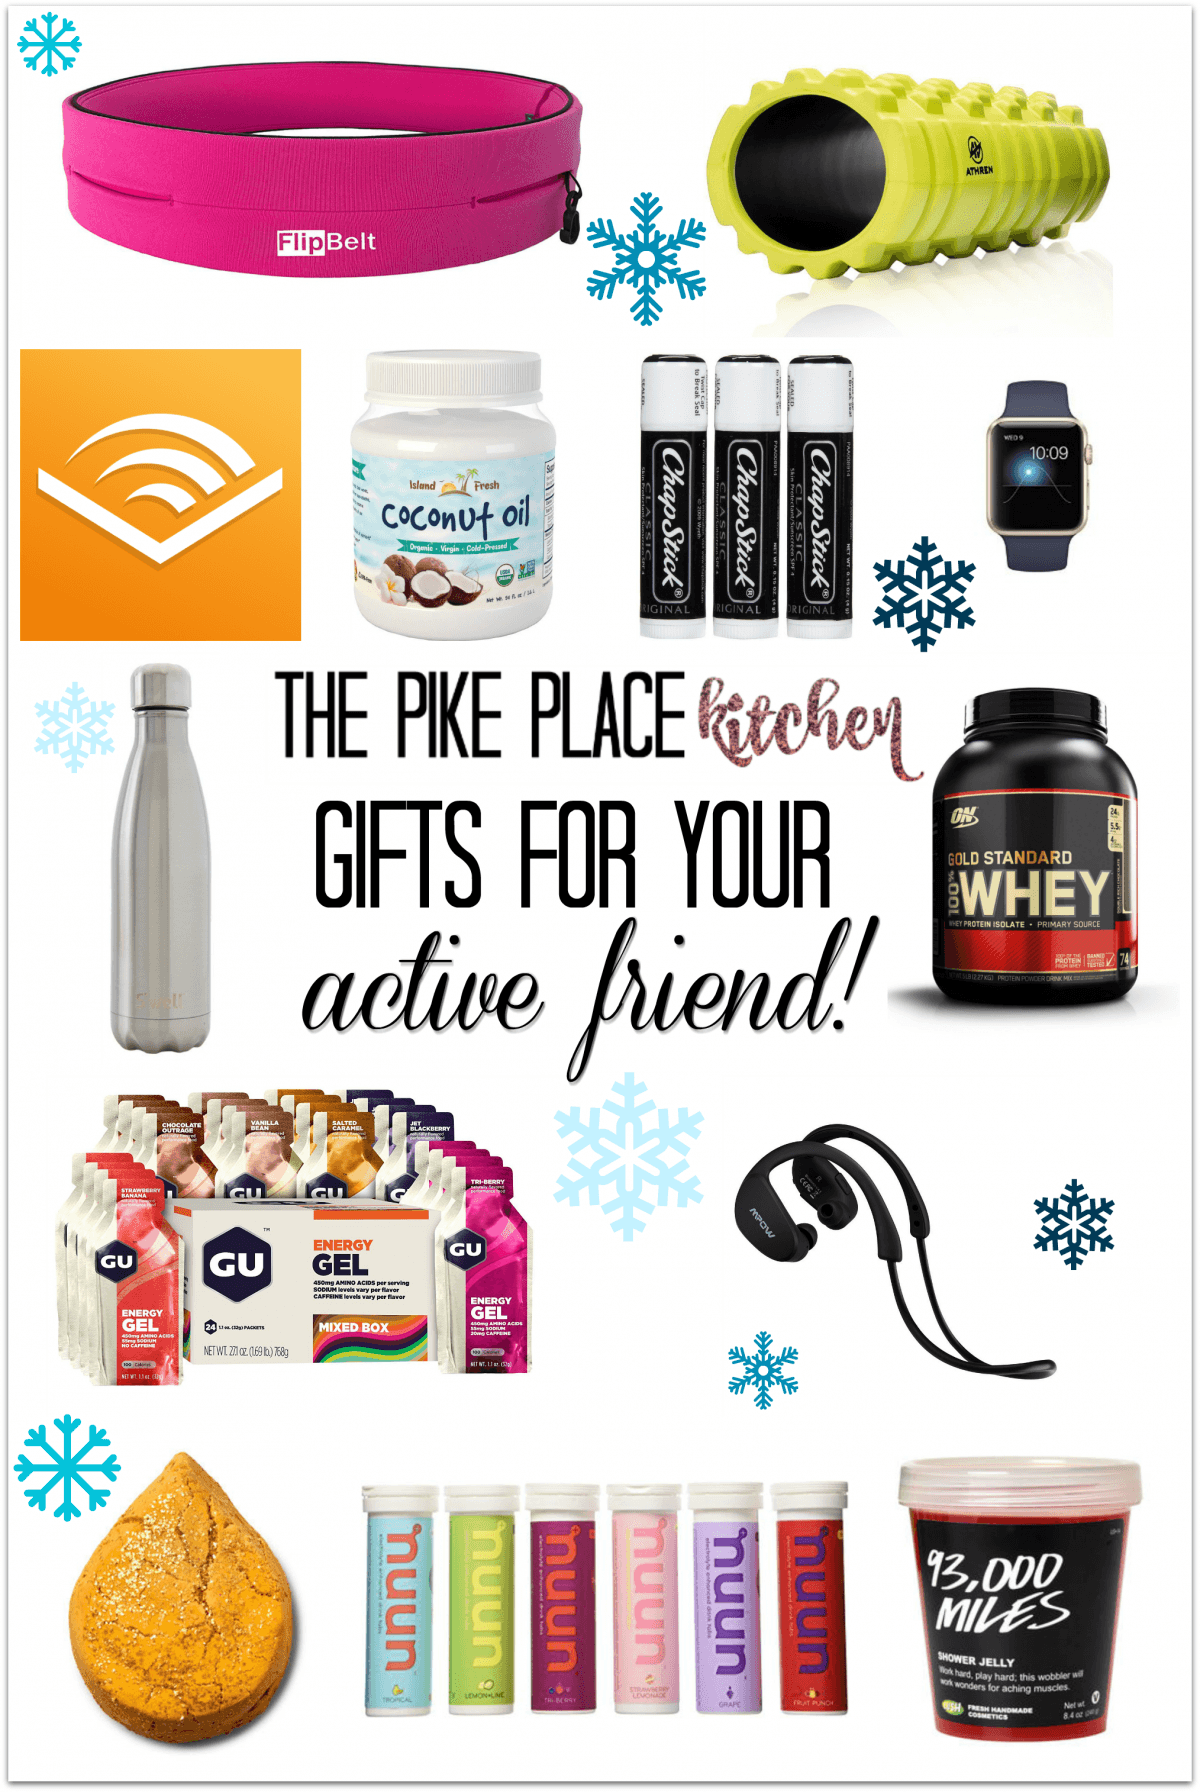 a collection of gift ideas for an active friend!